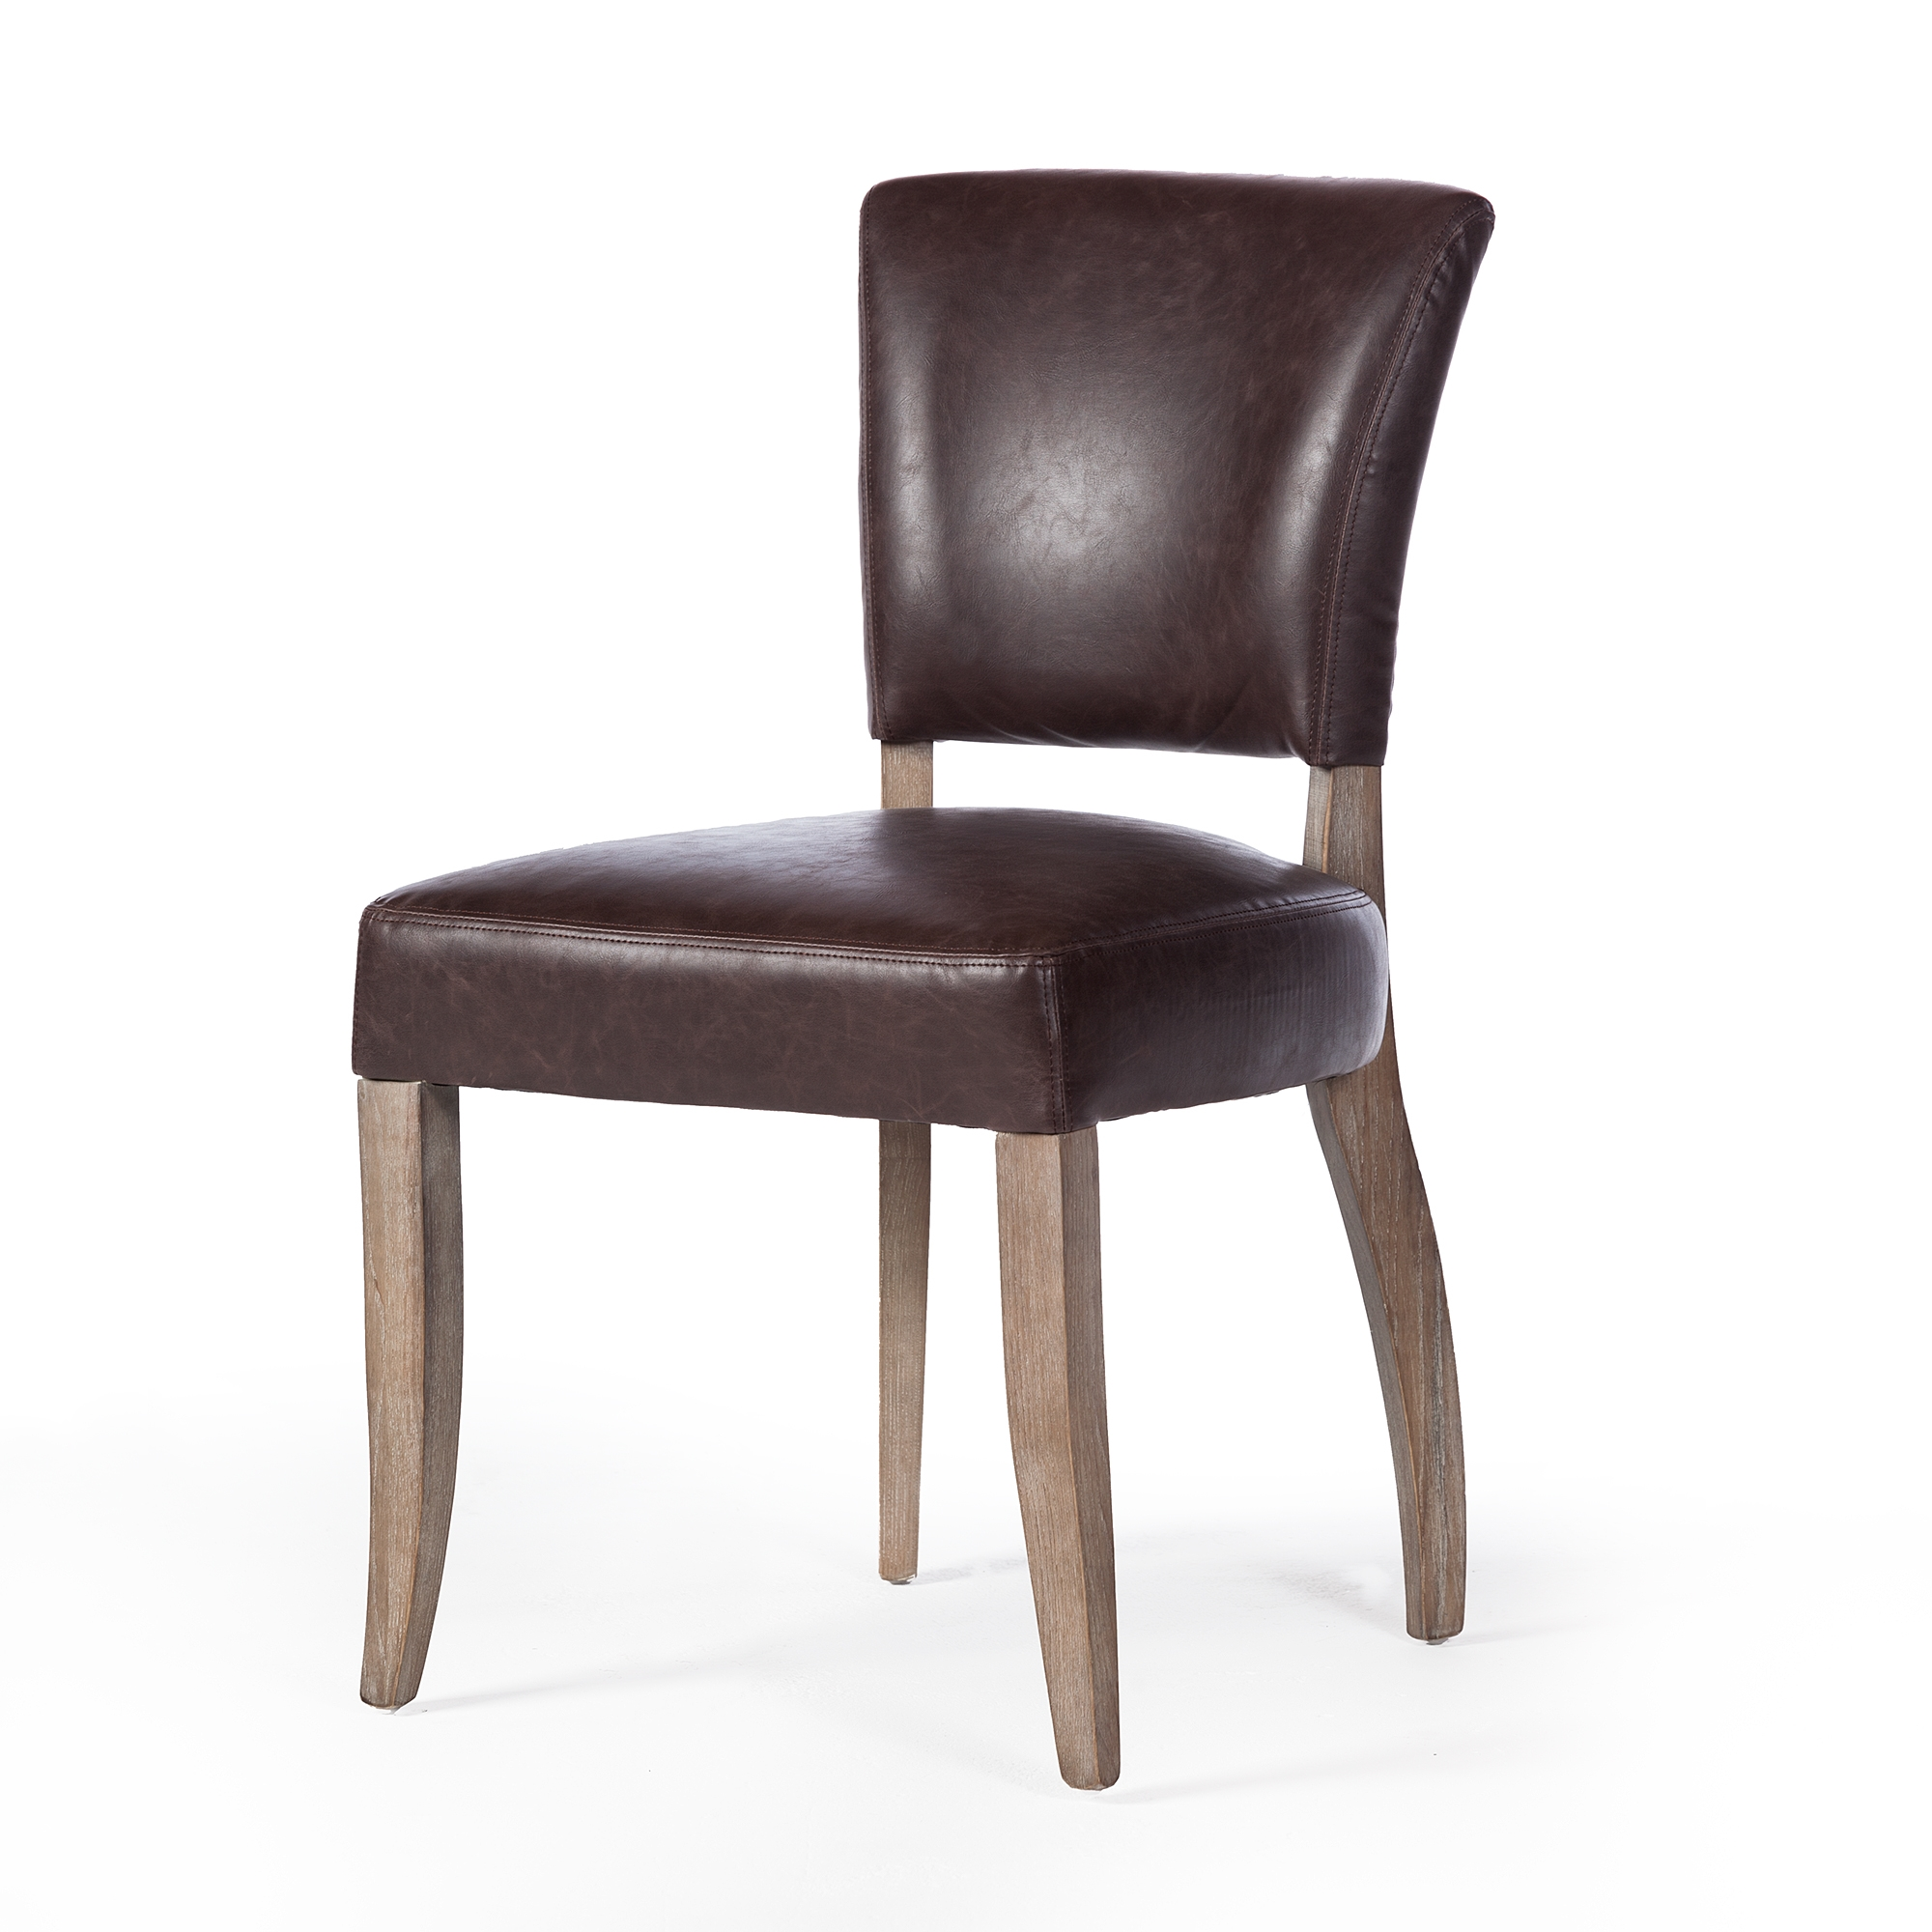 Fabulous Adele Leather Side Chair In Vintage Brown Machost Co Dining Chair Design Ideas Machostcouk